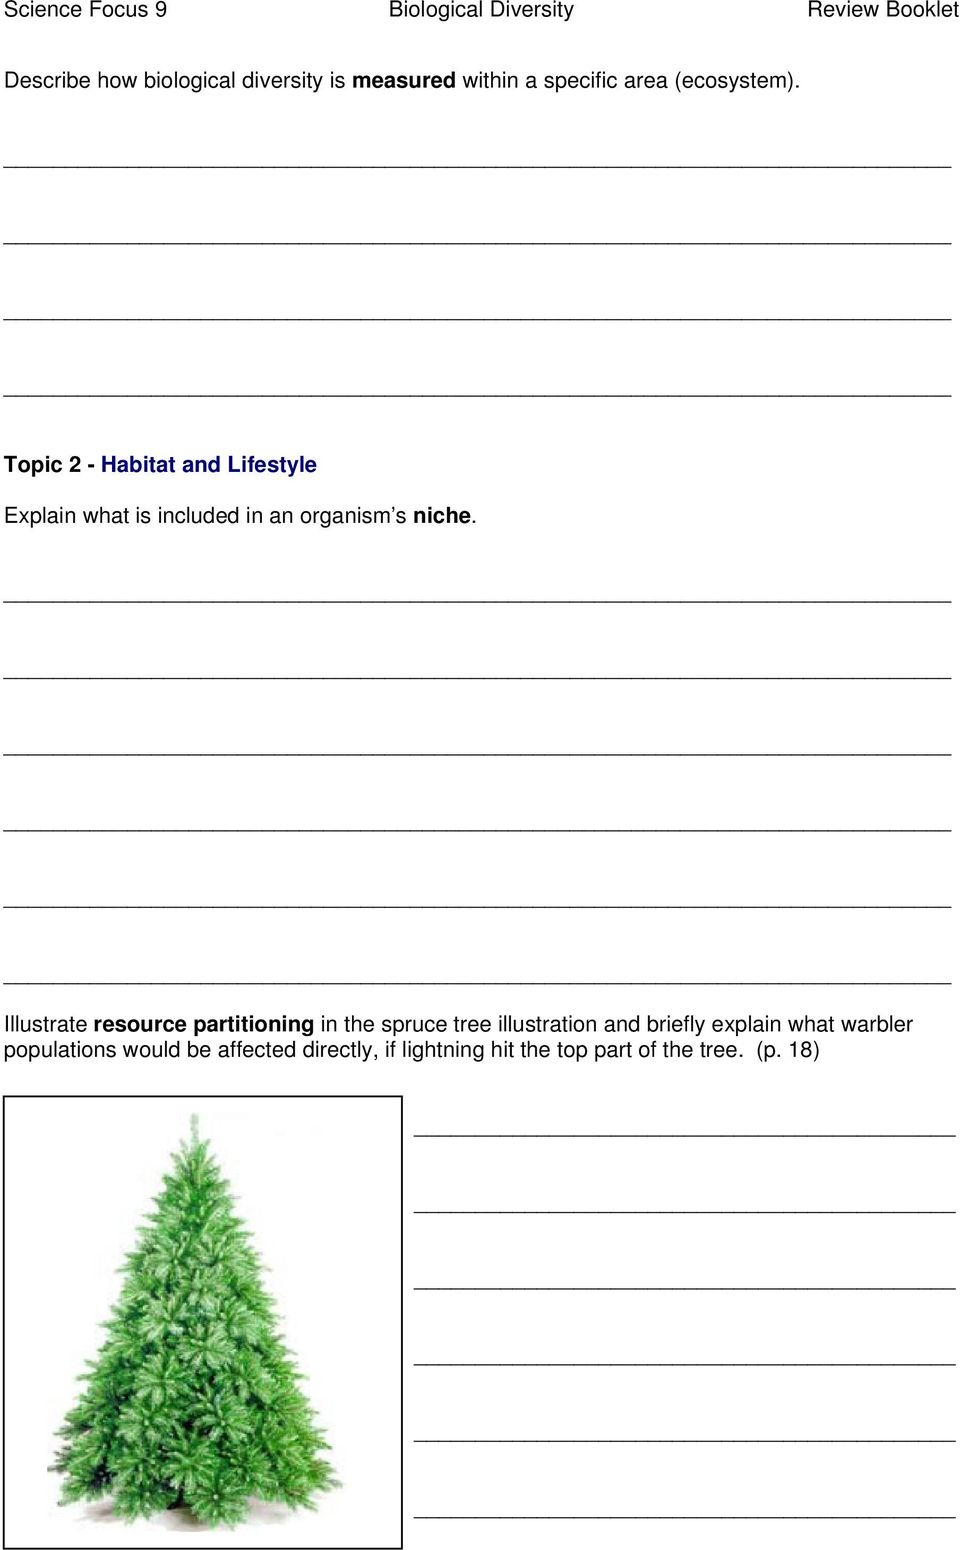 Illustrate resource partitioning in the spruce tree illustration and briefly explain